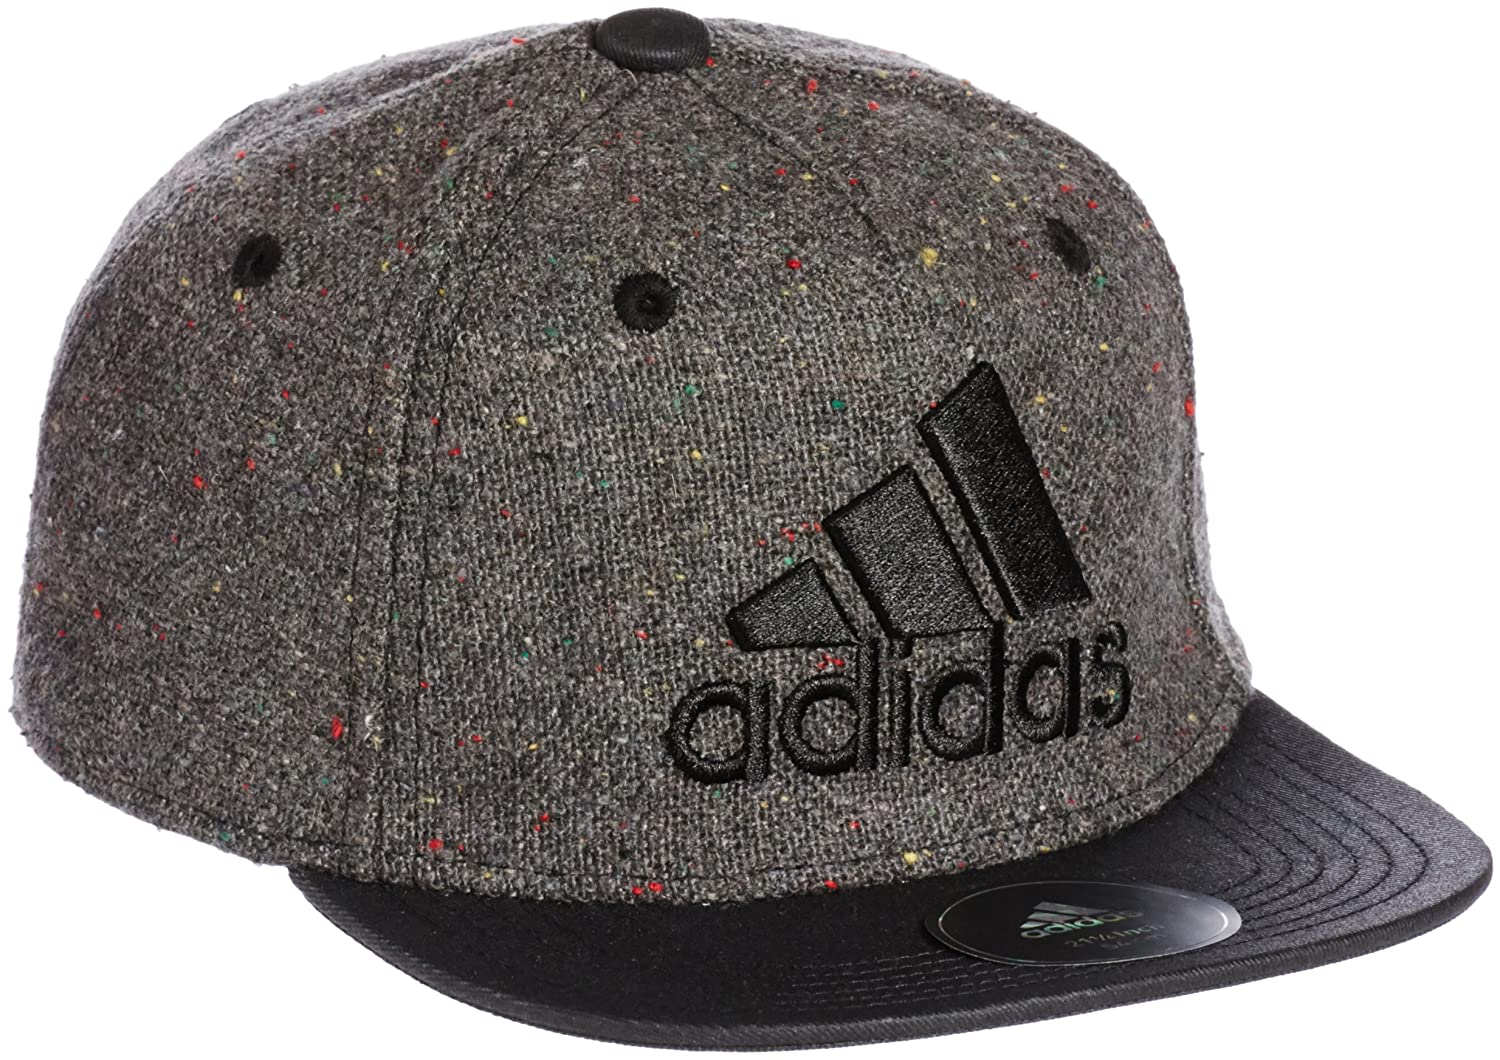 adidas FLAT CAP VSN1 Cap for Men 4f0764f8642